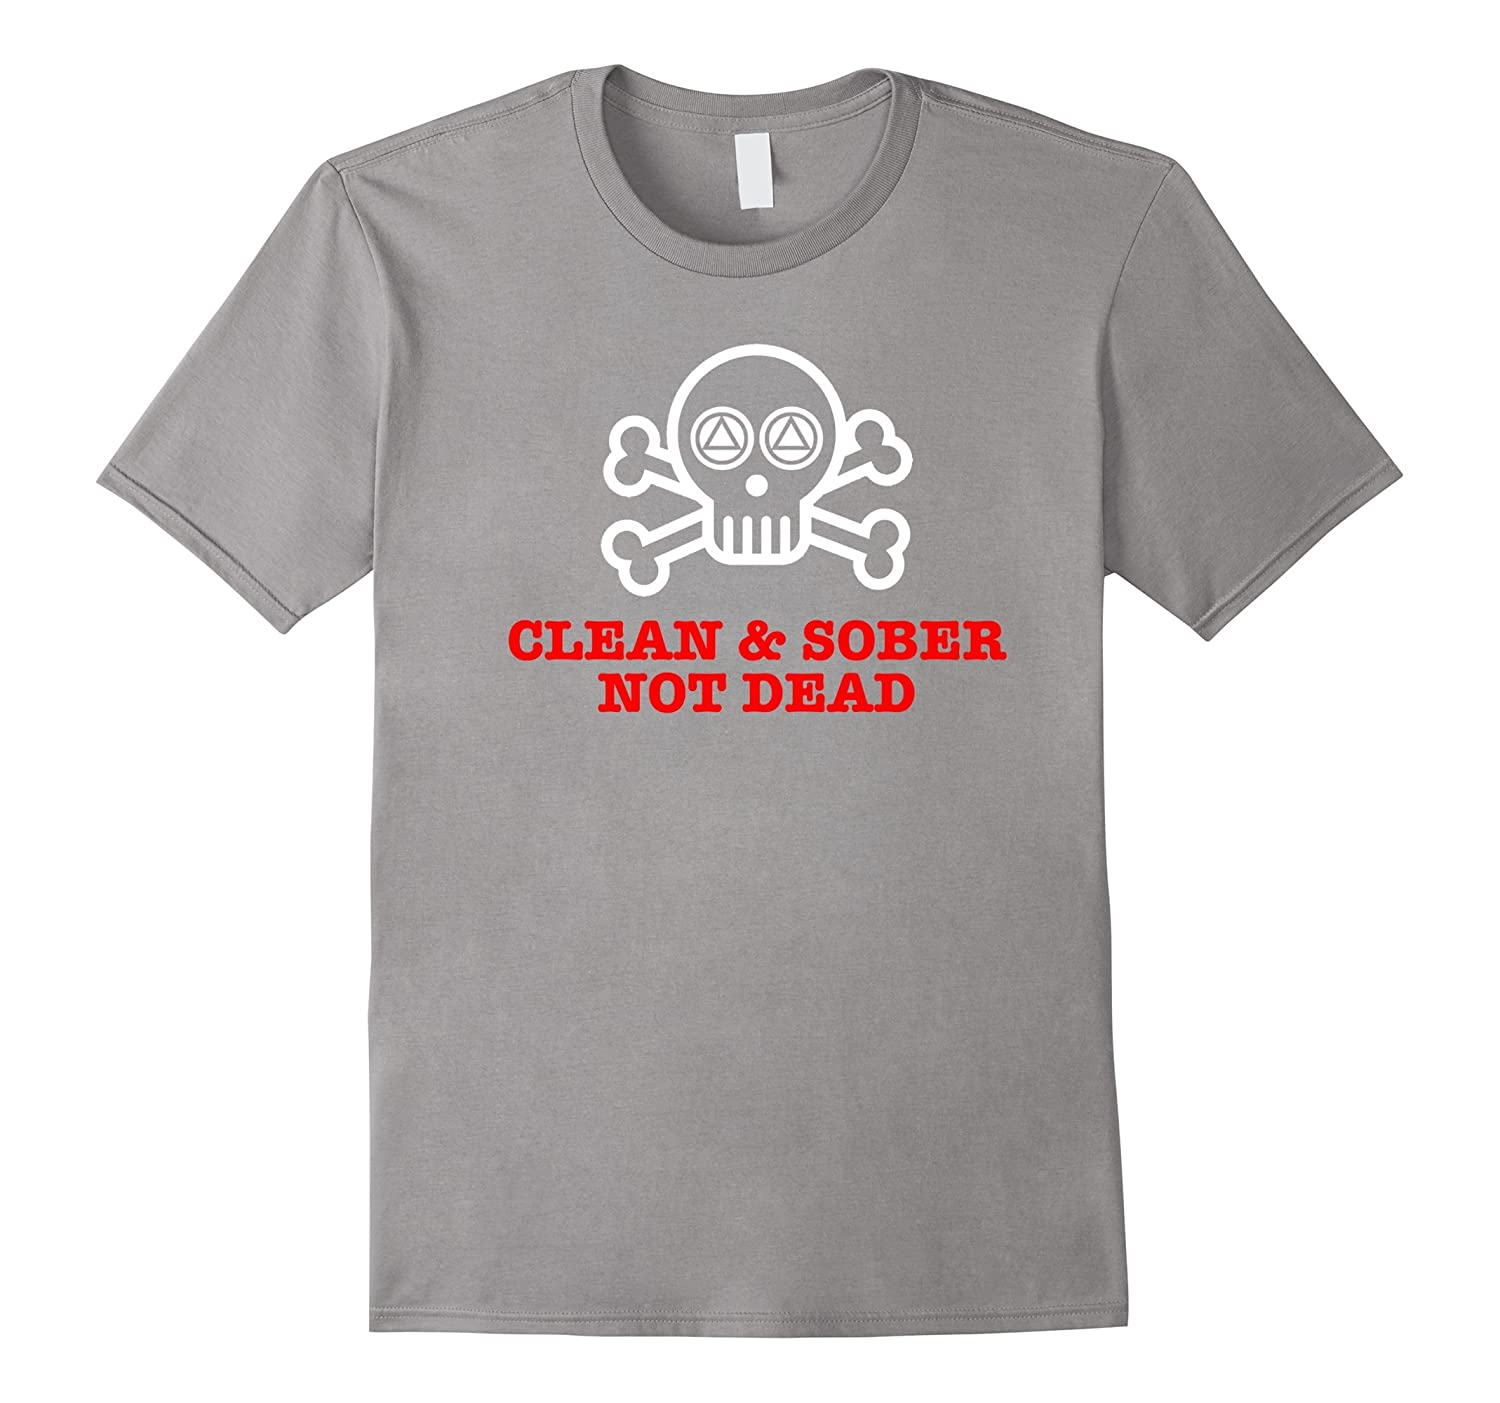 'Clean & Sober Not Dead' -Funny Alcoholics Anonymous T-Shirt